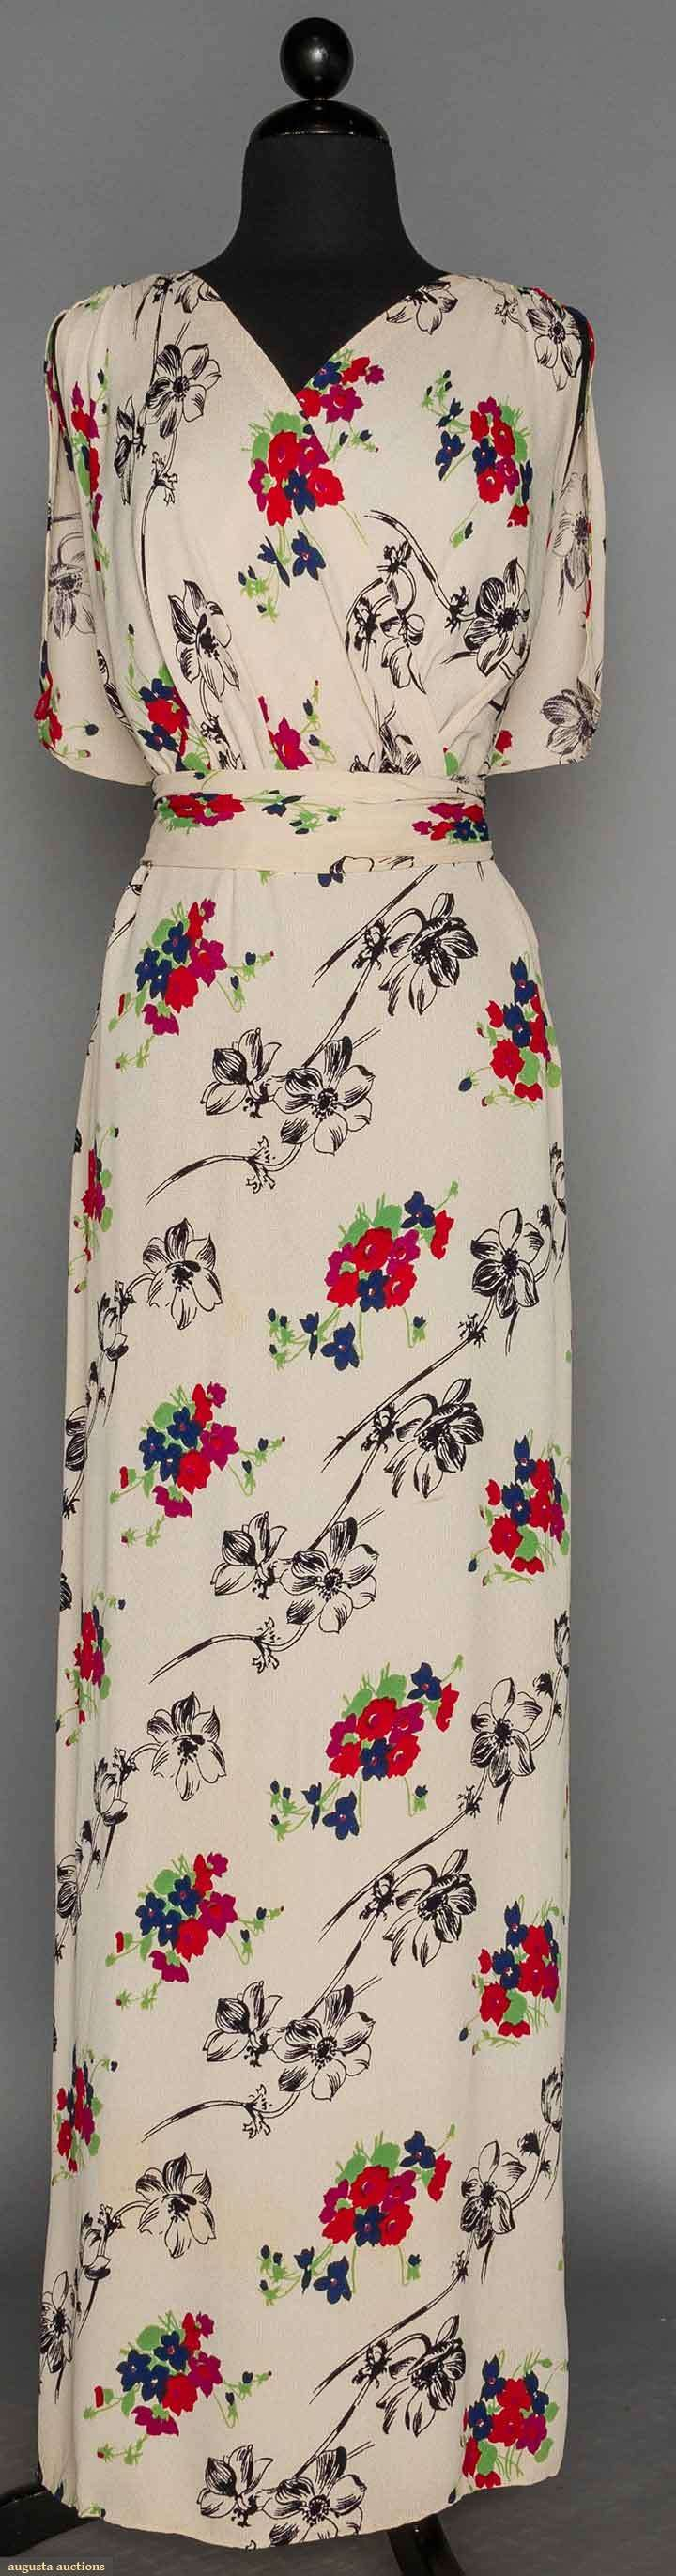 Long Printed Crepe Summer Dress, 1940s, Augusta Auctions, November 11, 2015 NYC